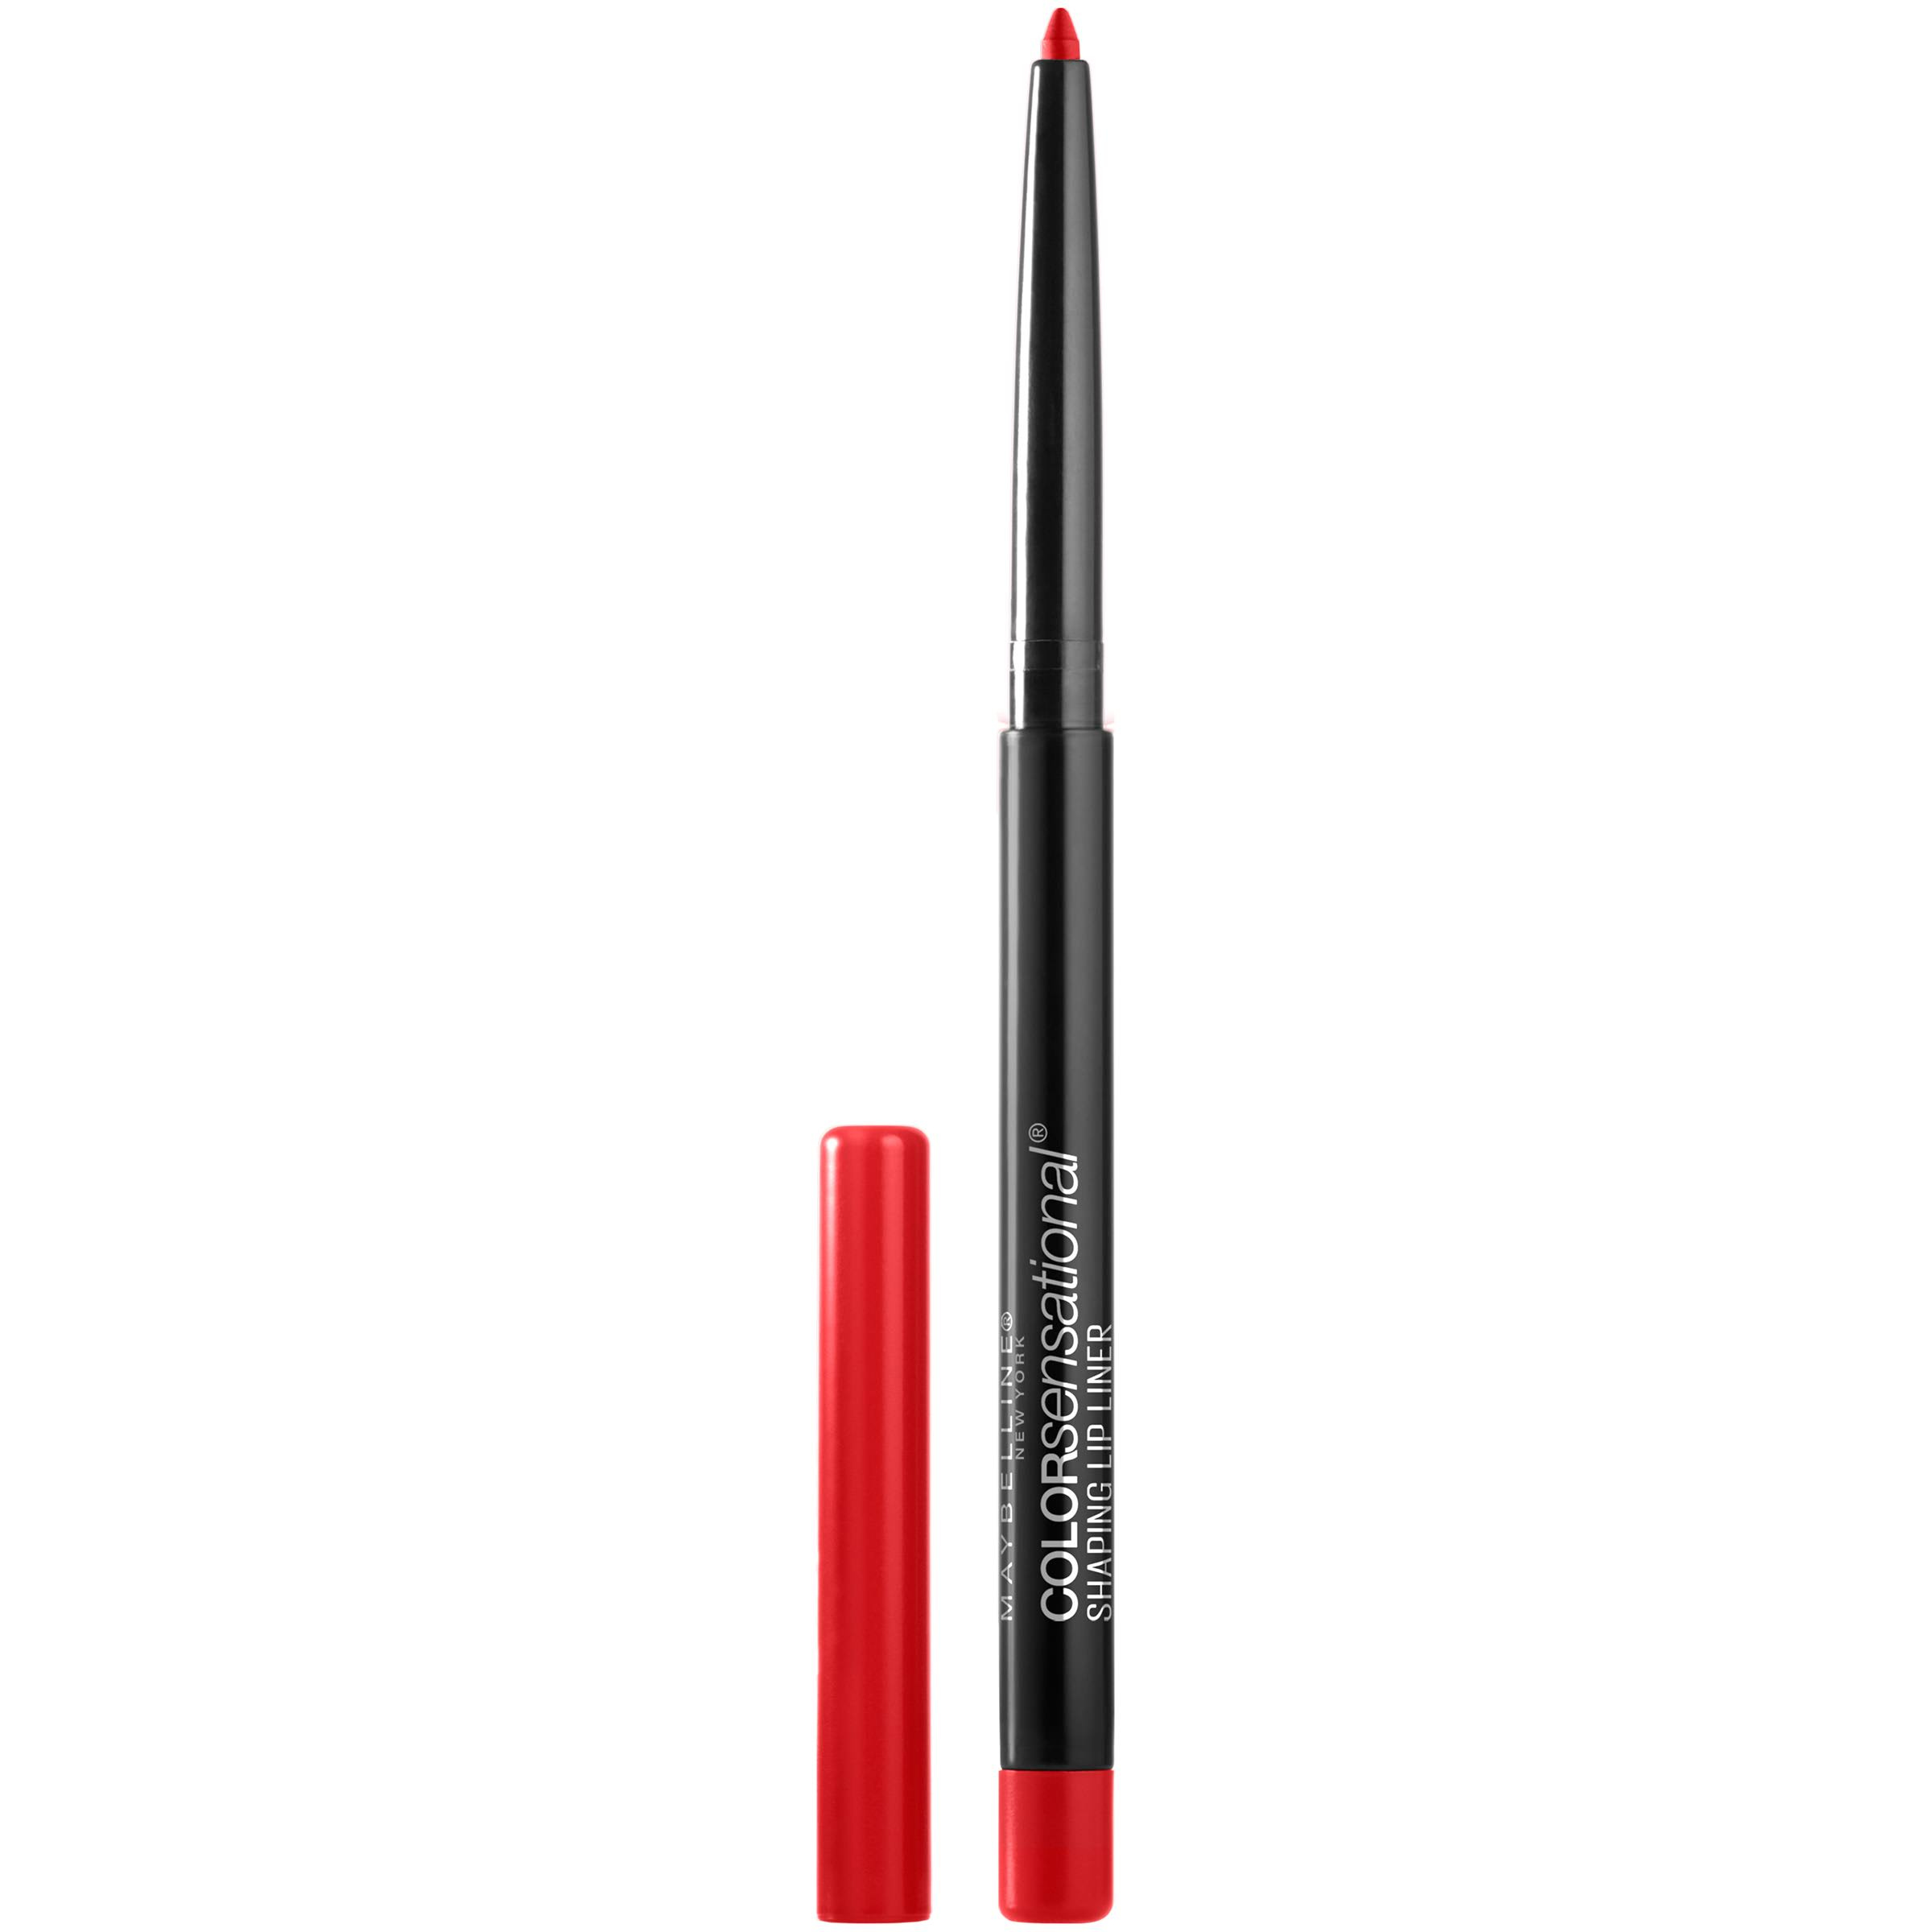 Maybelline Makeup Color Sensational Shaping Lip Liner - Very Cherry, 0.01oz